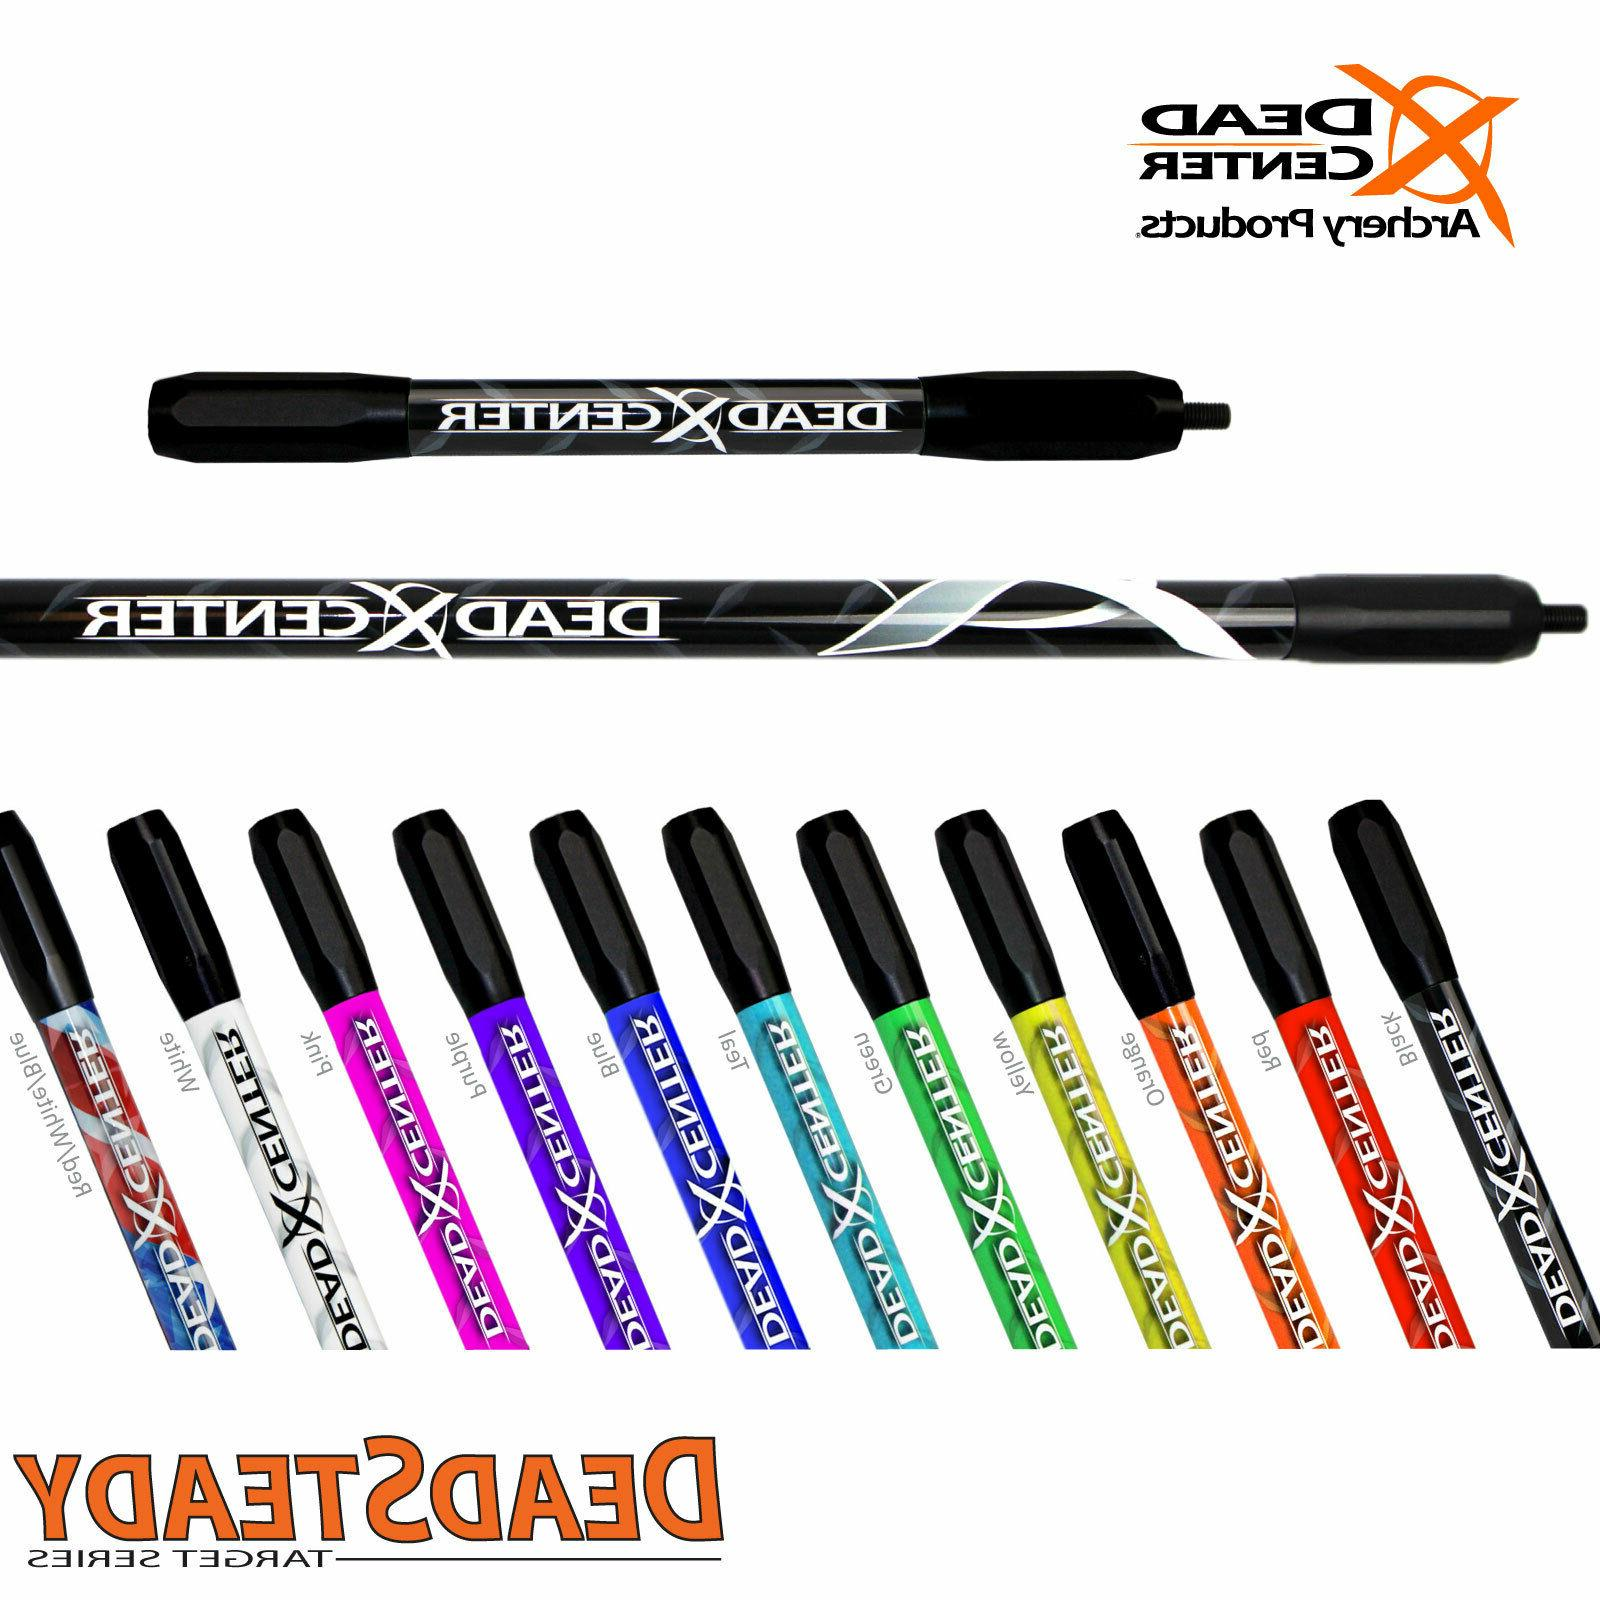 dead steady carbon stabilizer